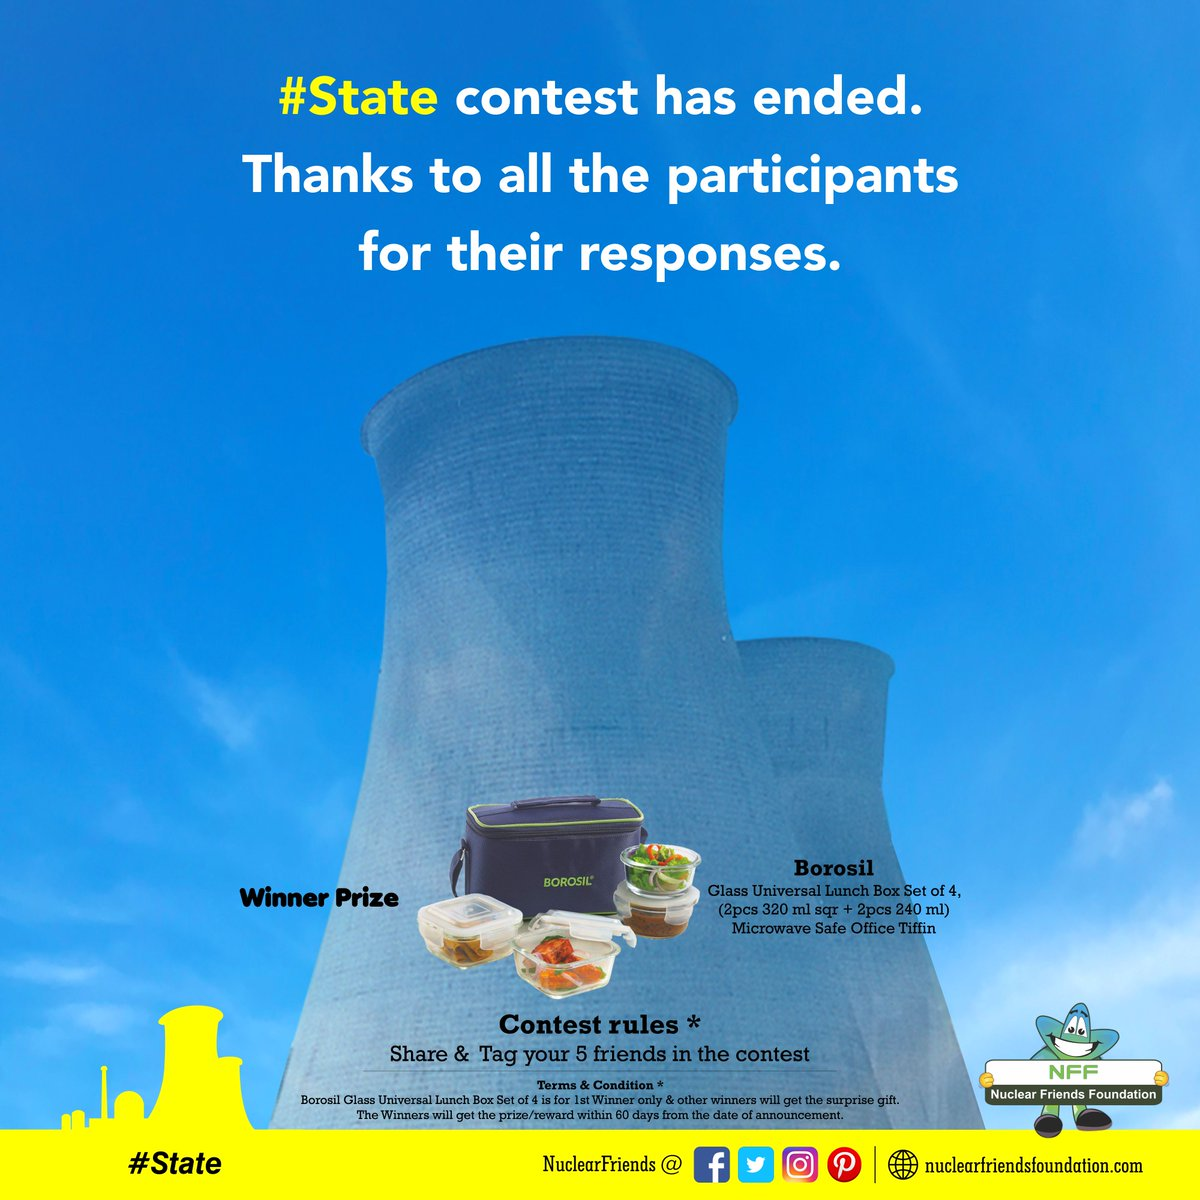 #ContestAlert #State contest has ended. Thanks to all the participants for their responses.  Reach us @ http://nuclearfriendsfoundation.com  #Contest #like #RT #comment #chance #Win #prizes #Today #goodluck #giveaway #competition  #ContestEntry #entertowin  #weekendvibes @india4contests